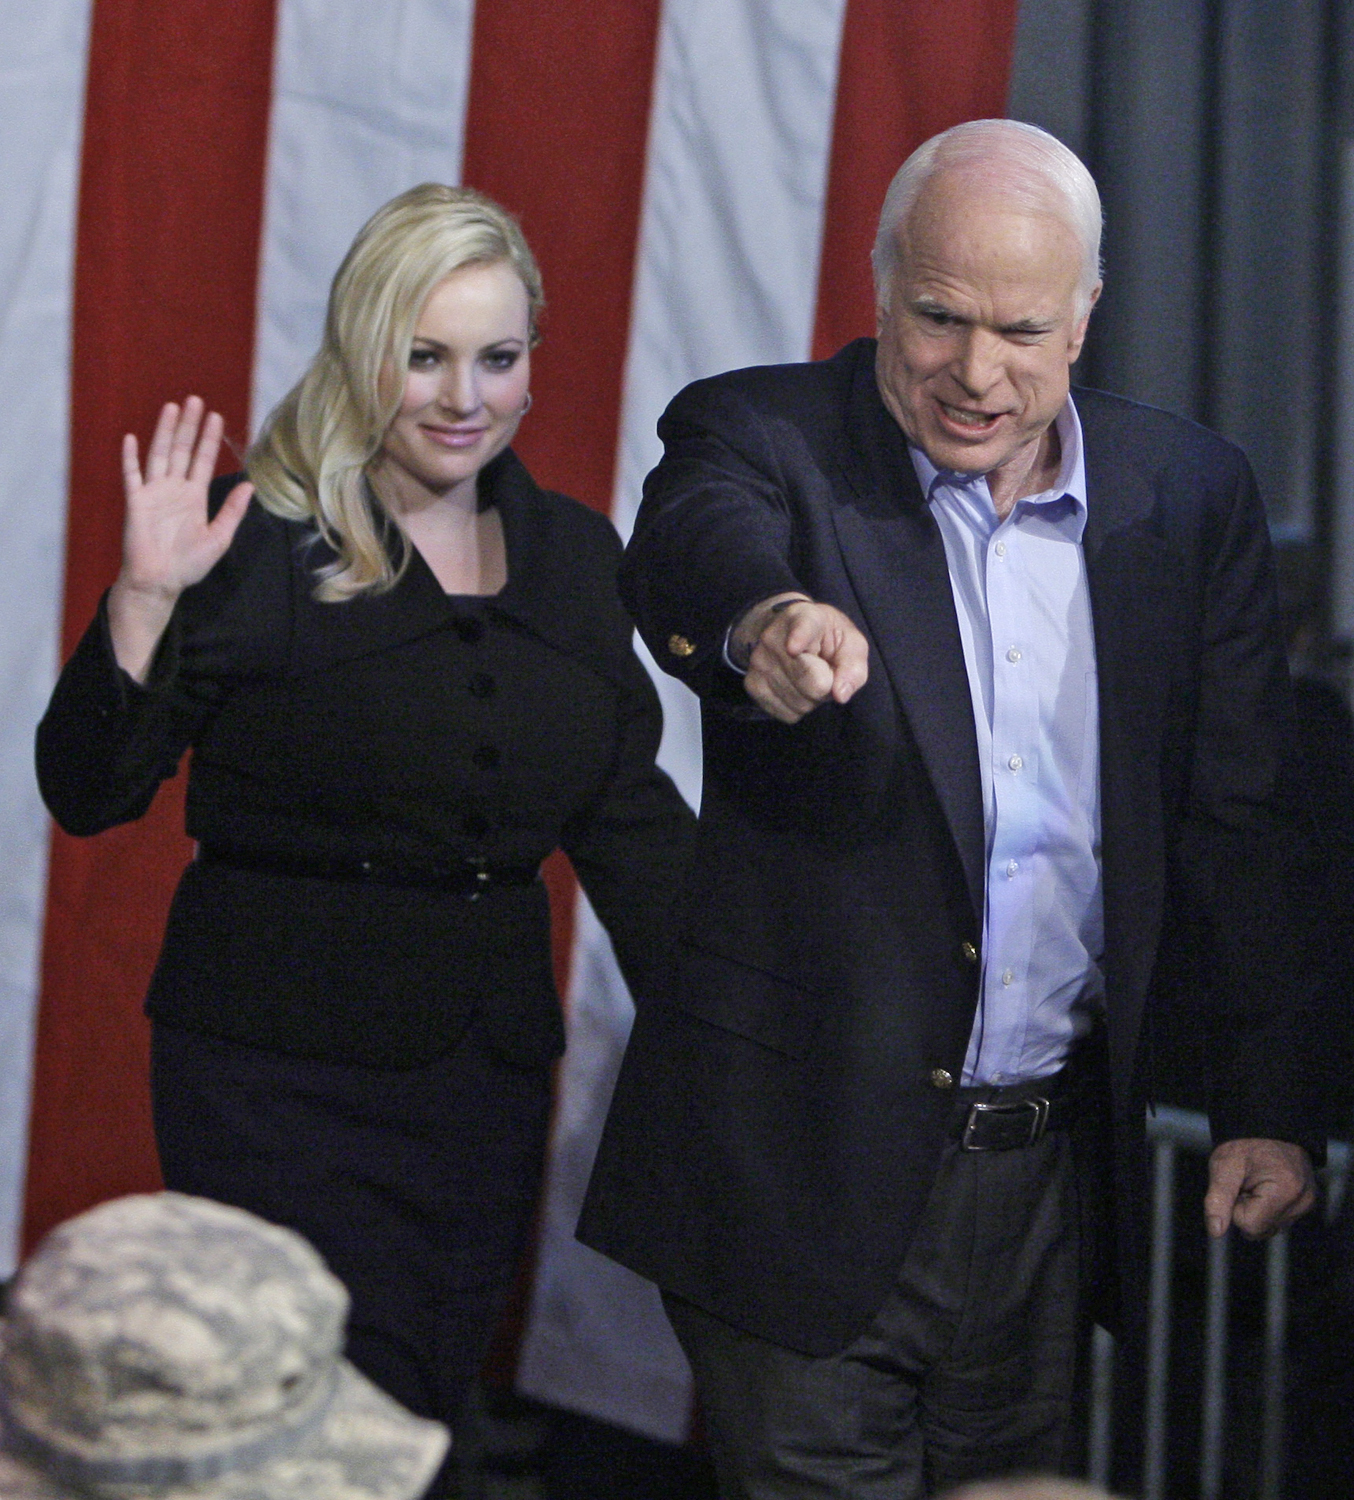 Meghan Mccain Related To John Mccain: Meghan McCain's New Reality Show Will Be A Cross Between